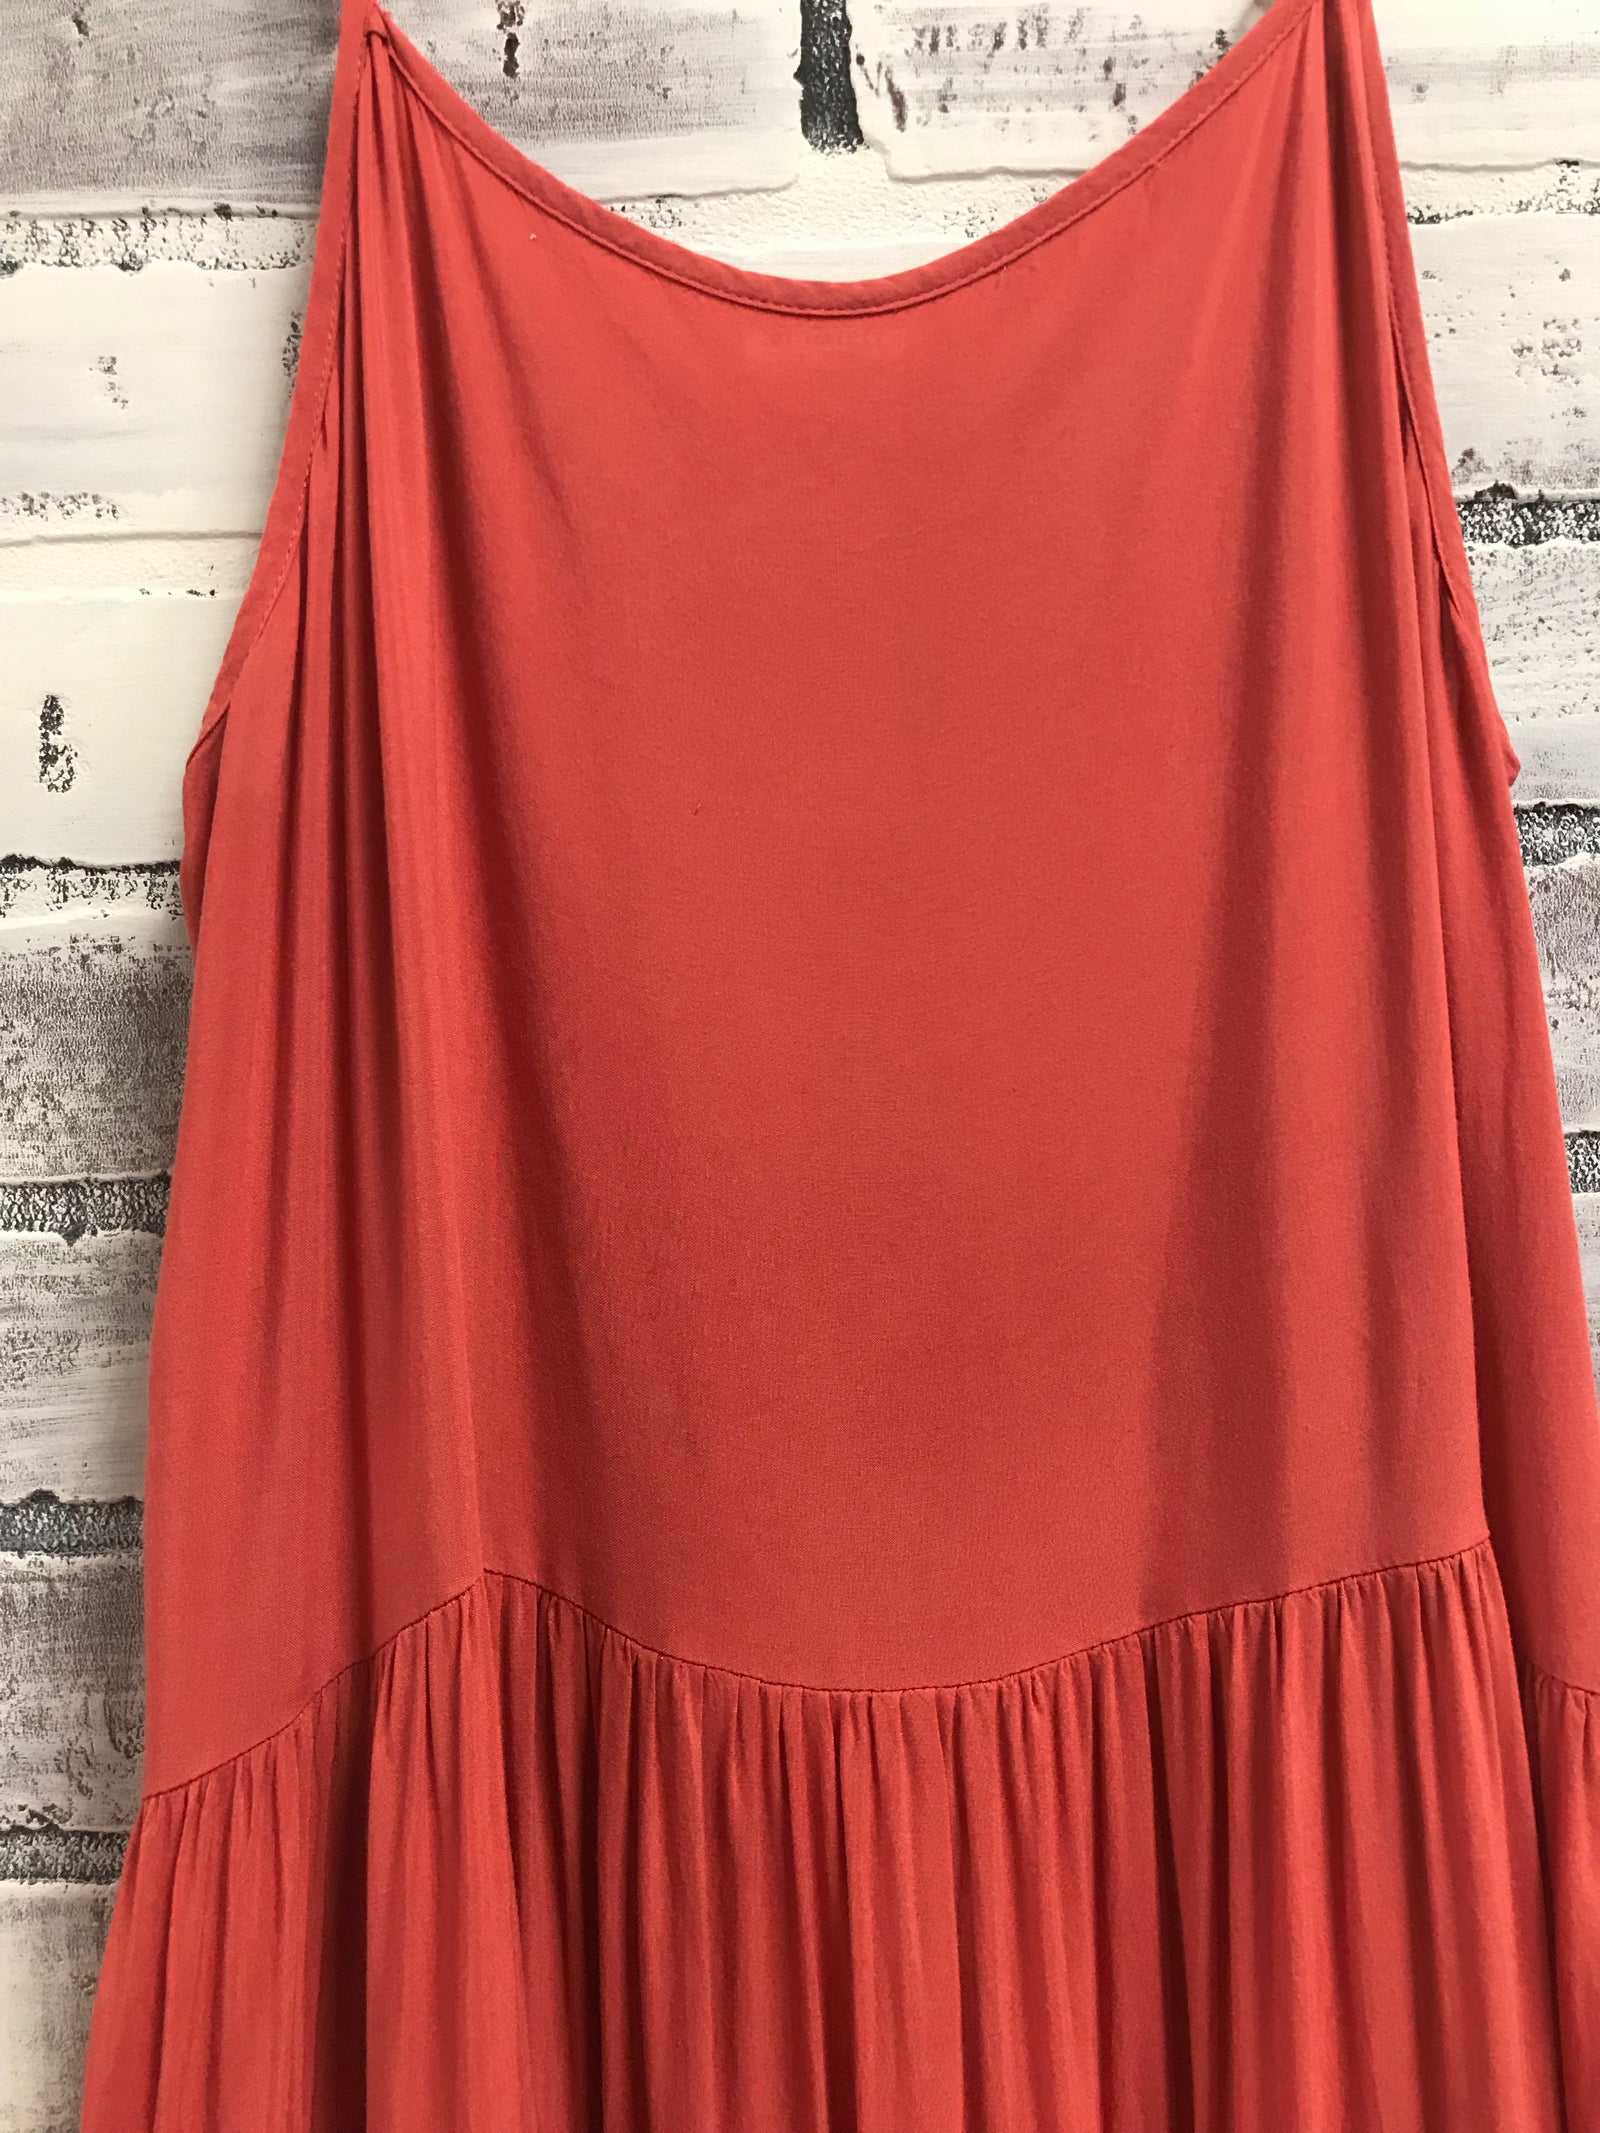 Free People Dress (M)